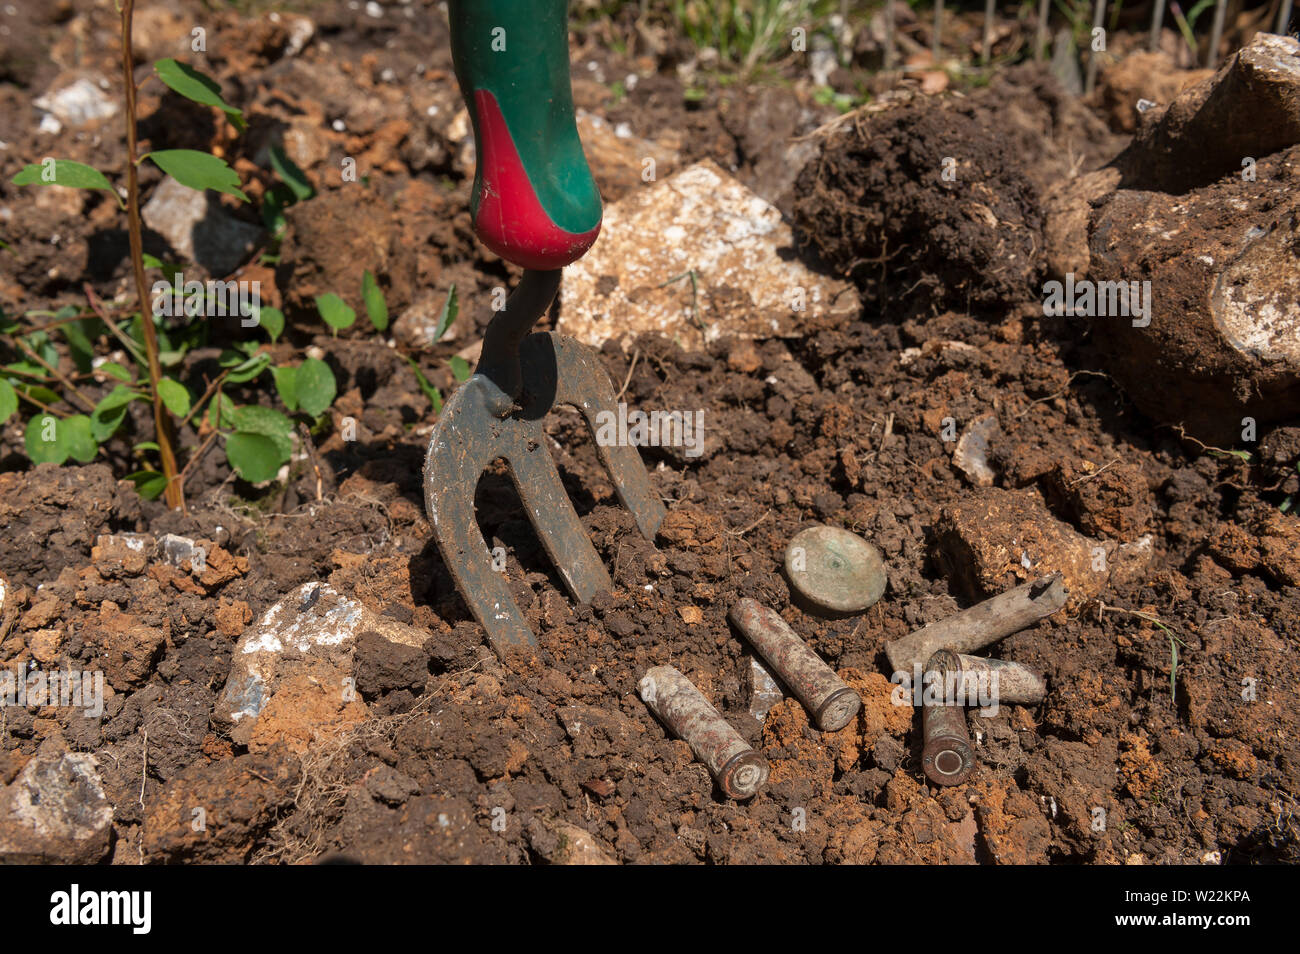 Dangers of gardening a new patch of soil in a garden once in